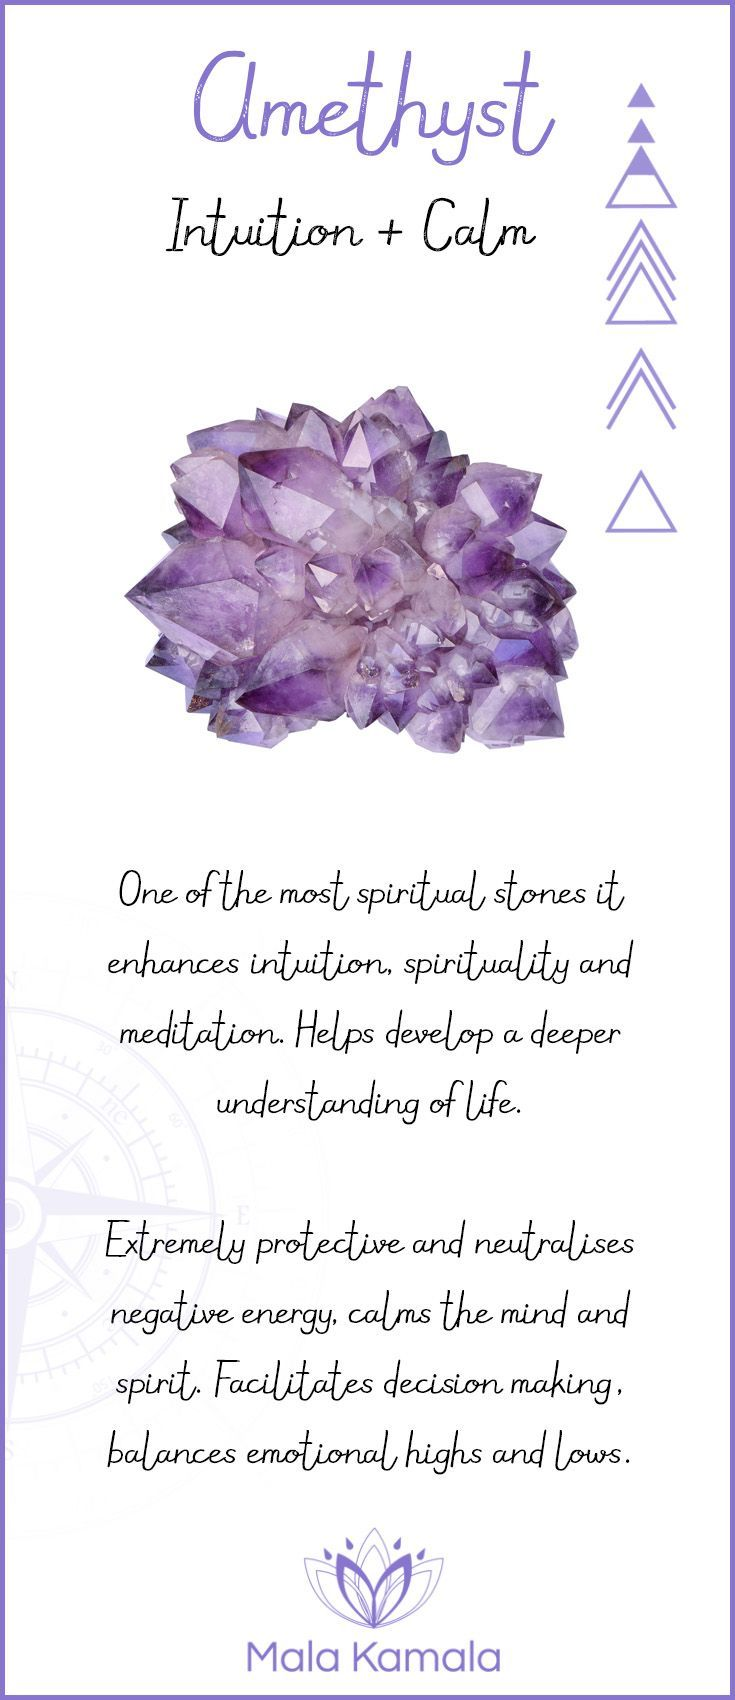 Pin To Save, Tap To Shop The Gem. What is the meaning and crystal and chakra healing properties of amethyst? Mala Kamala Mala Beads - Malas, Mala Beads, Mala Bracelets, Tiny Intentions, Baby Necklaces, Yoga Jewelry, Meditation Jewelry, Baltic Amber Neckla